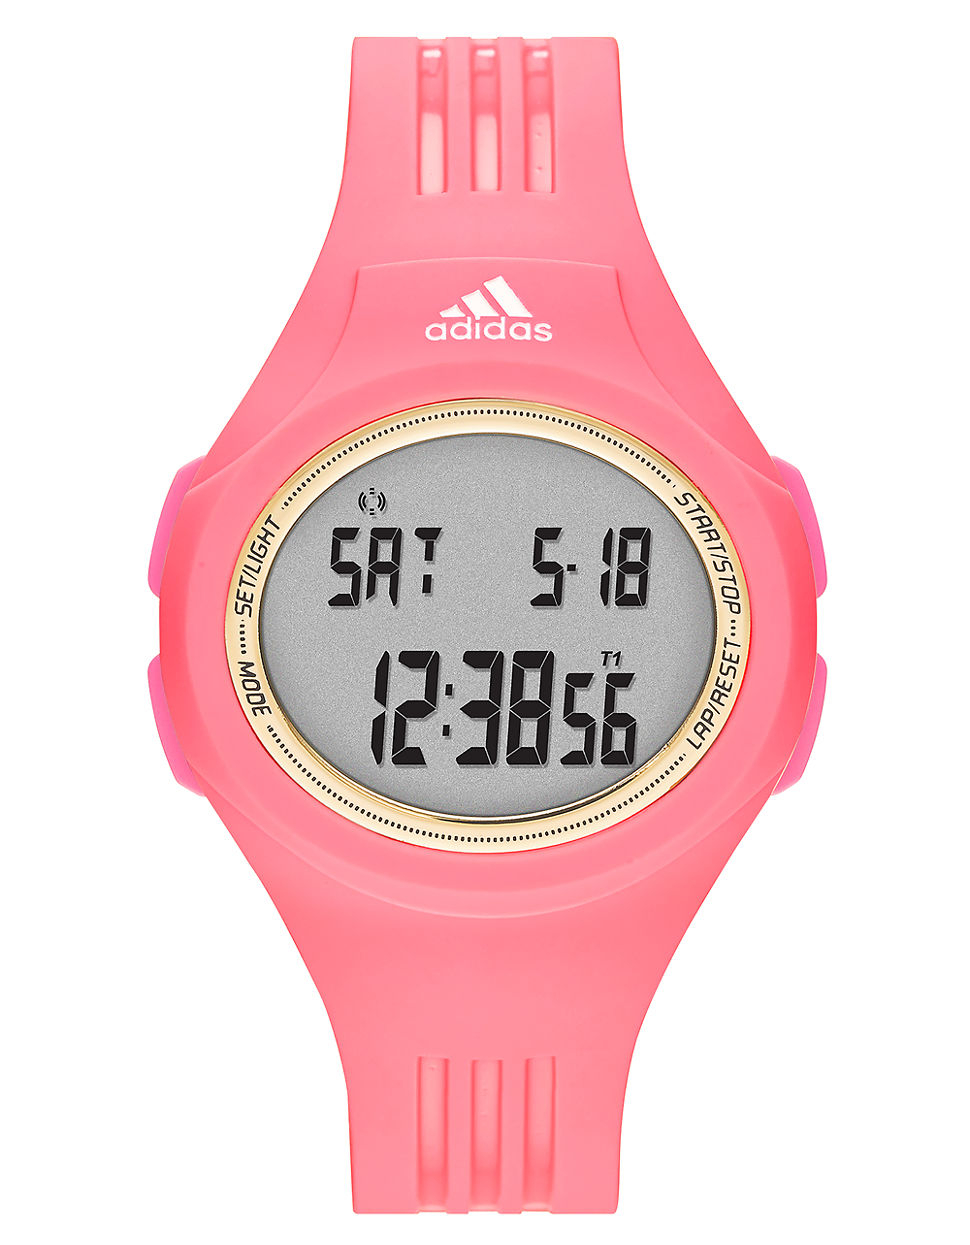 Adidas Watches For Women Pink Adh3017 Aberdeen Red Dial Rubber Strap